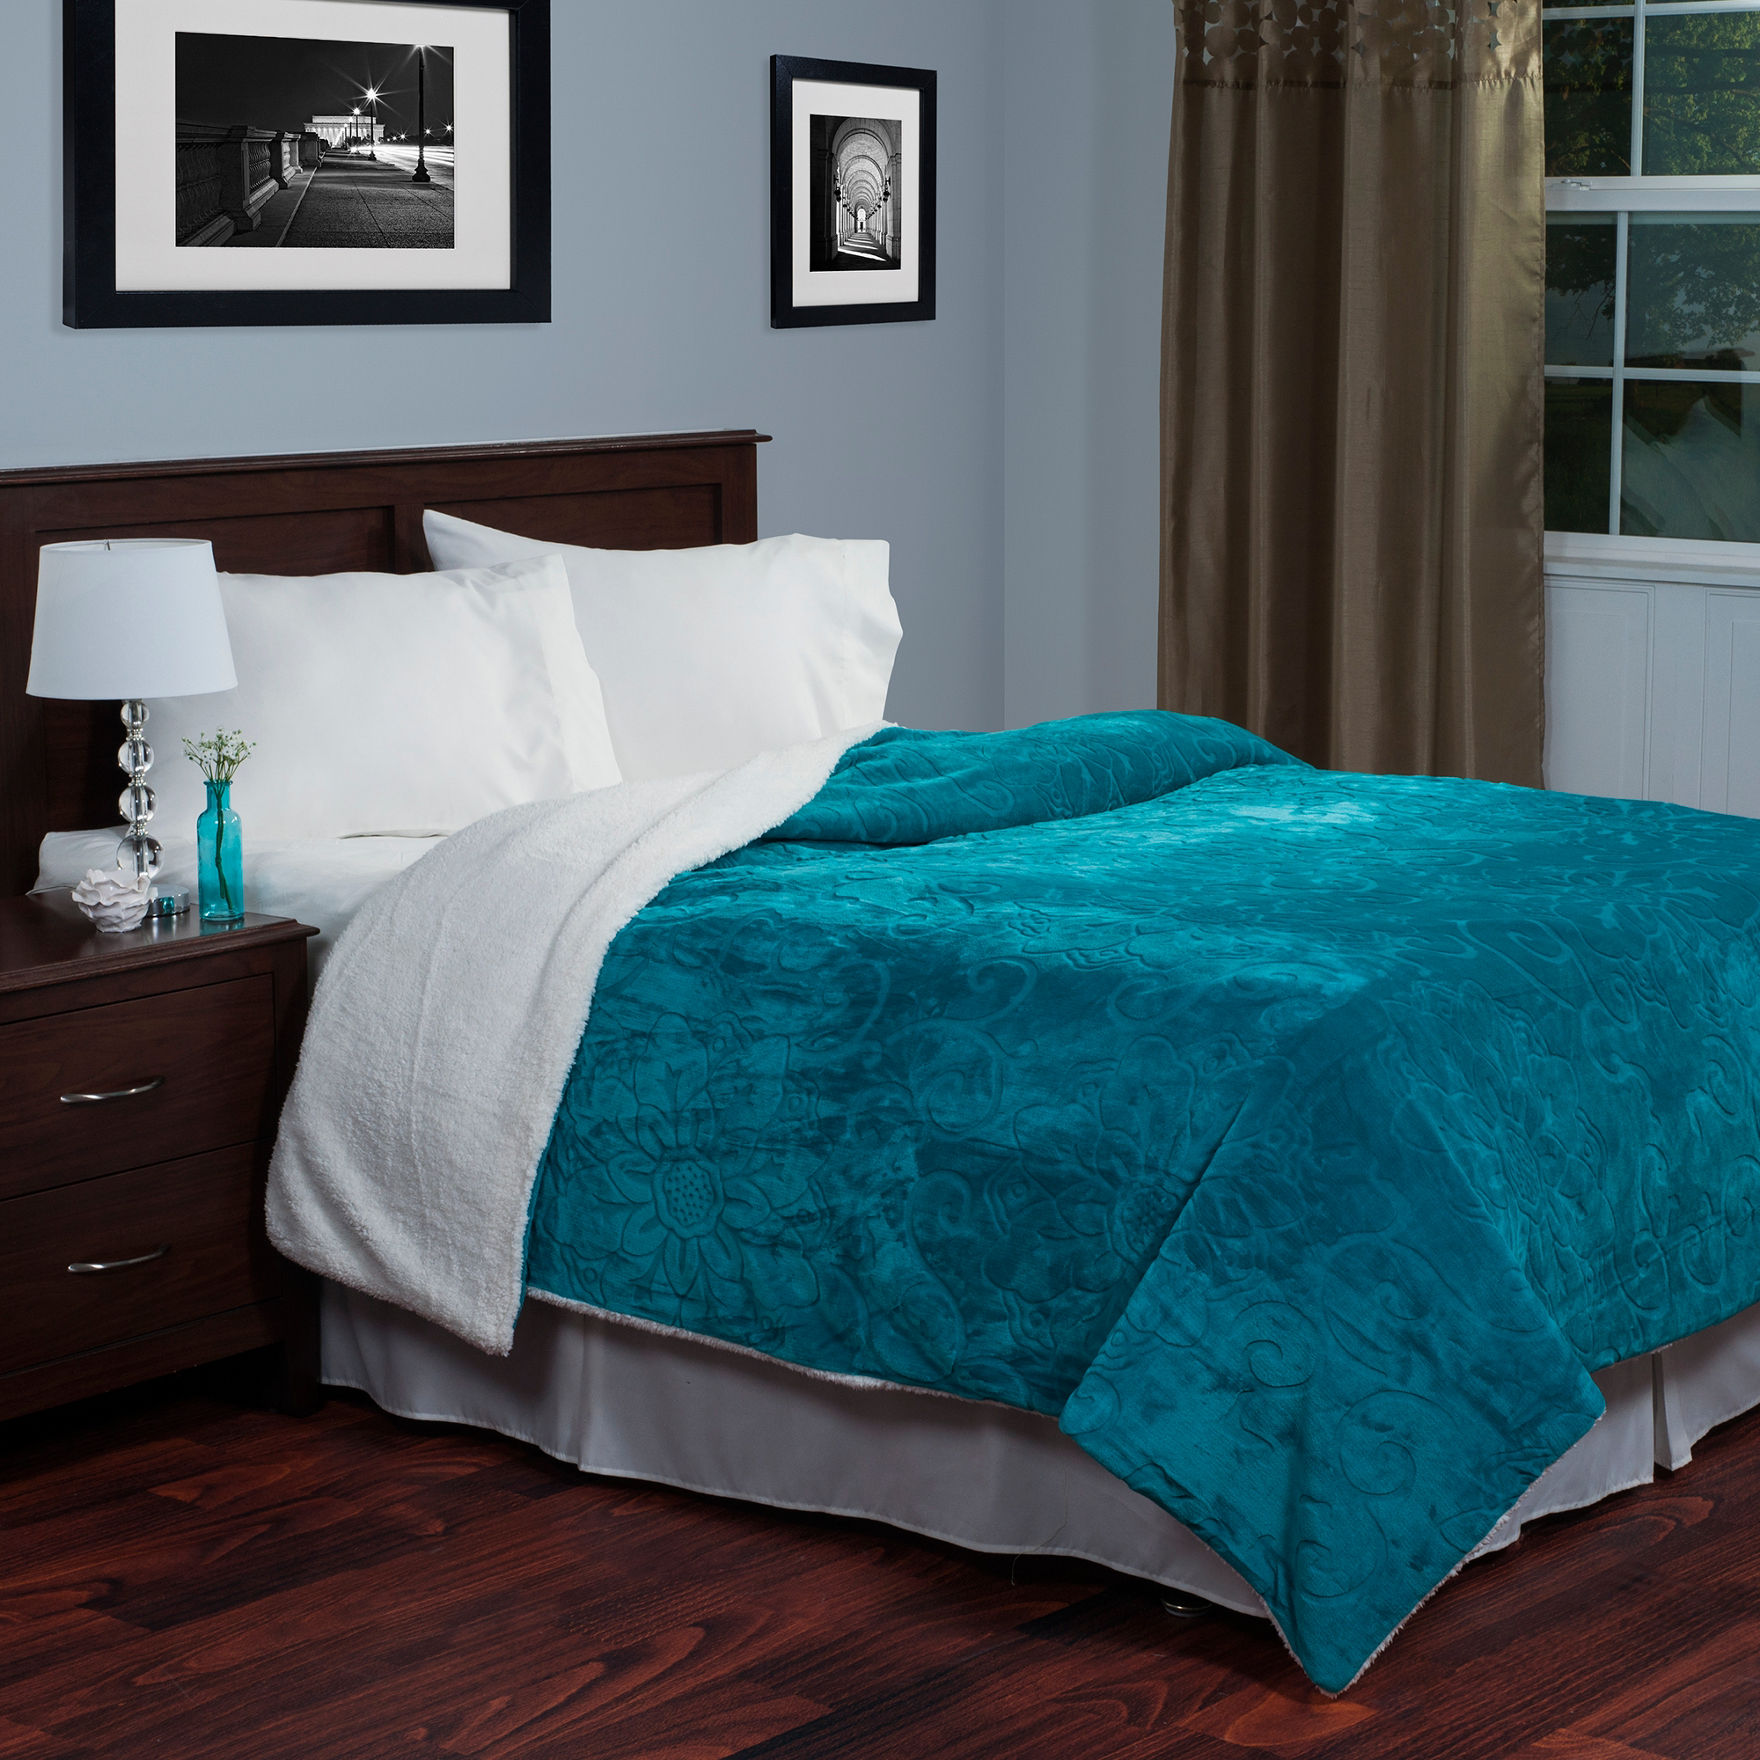 Lavish Home Teal Blankets & Throws